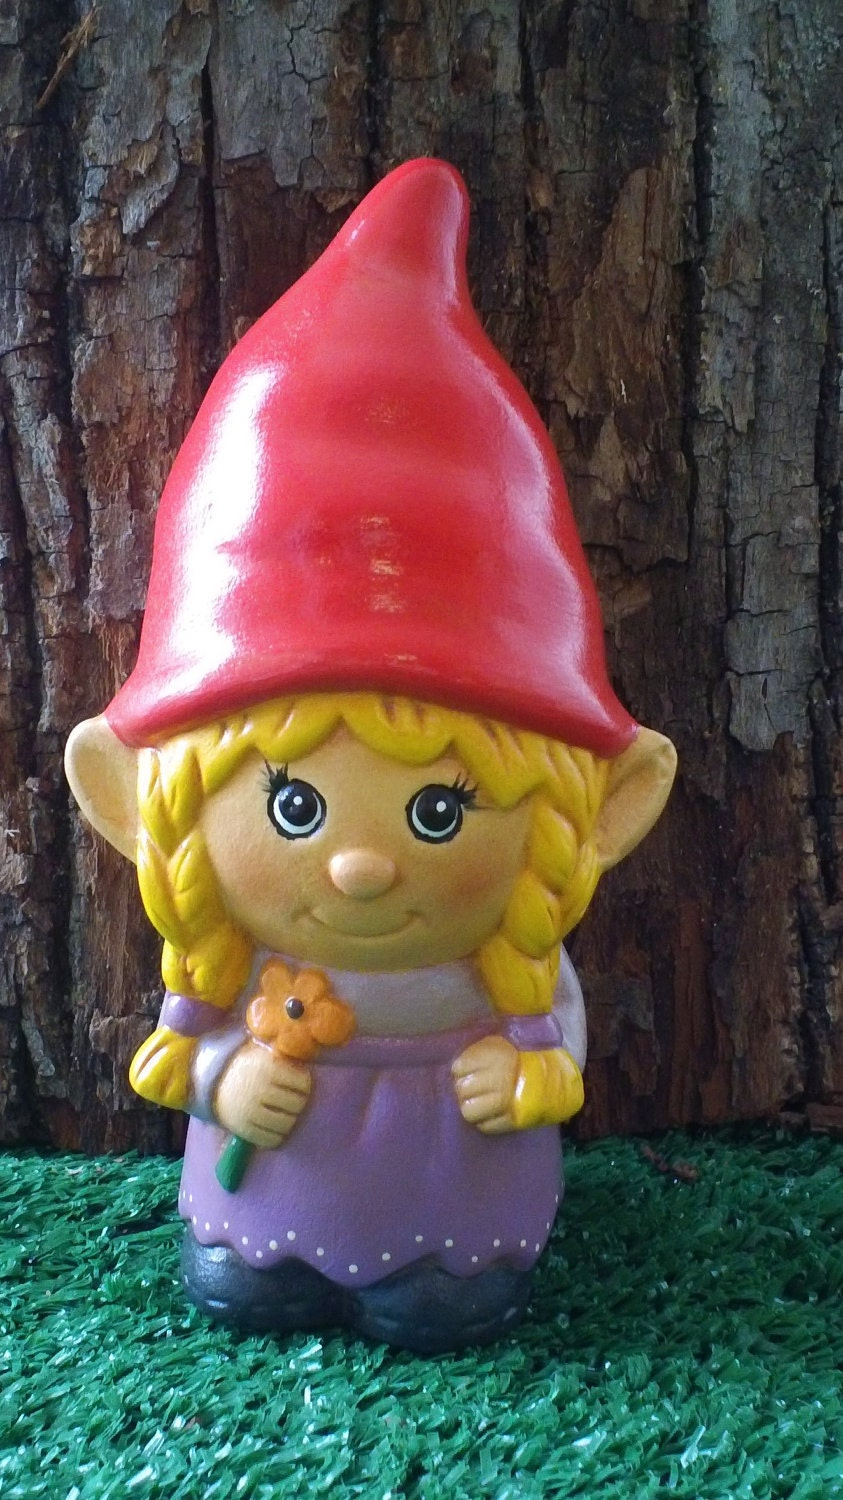 Gnome Garden: Hand Painted Ceramic Girl Garden Gnome